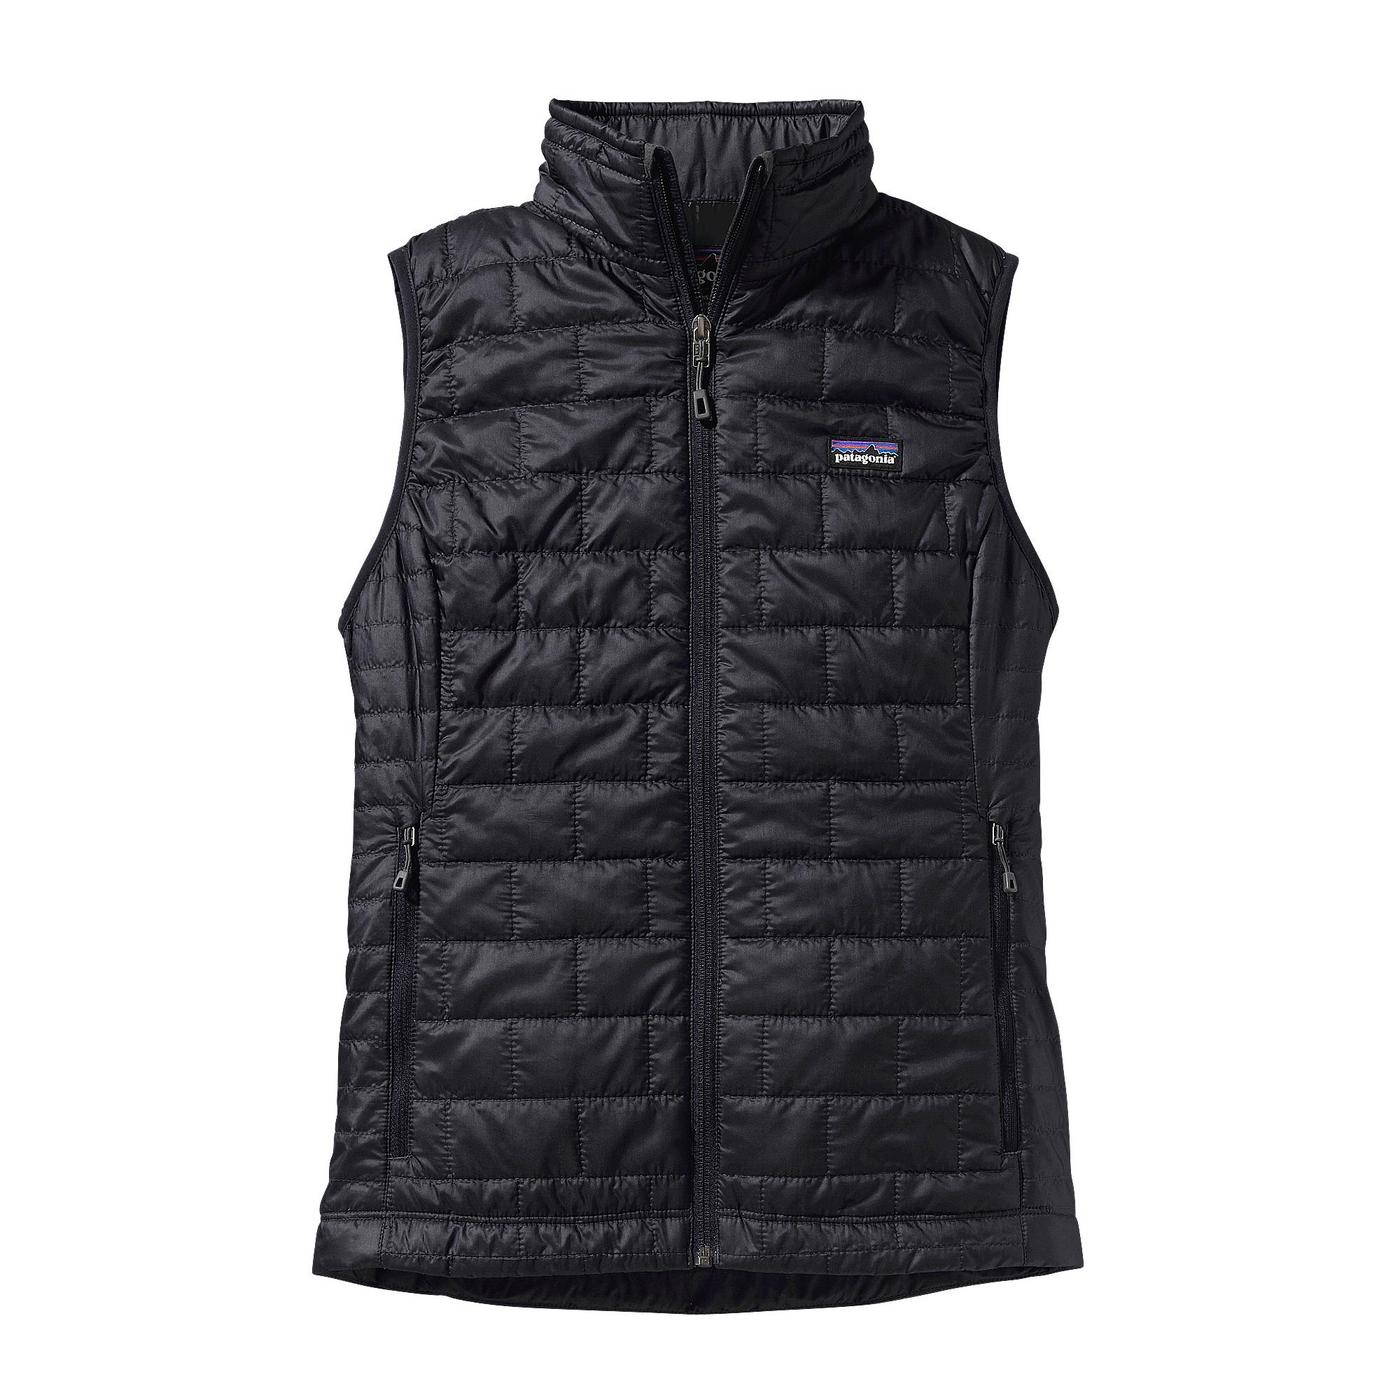 Shop for black vest womens online at Target. Free shipping on purchases over $35 and save 5% every day with your Target REDcard.